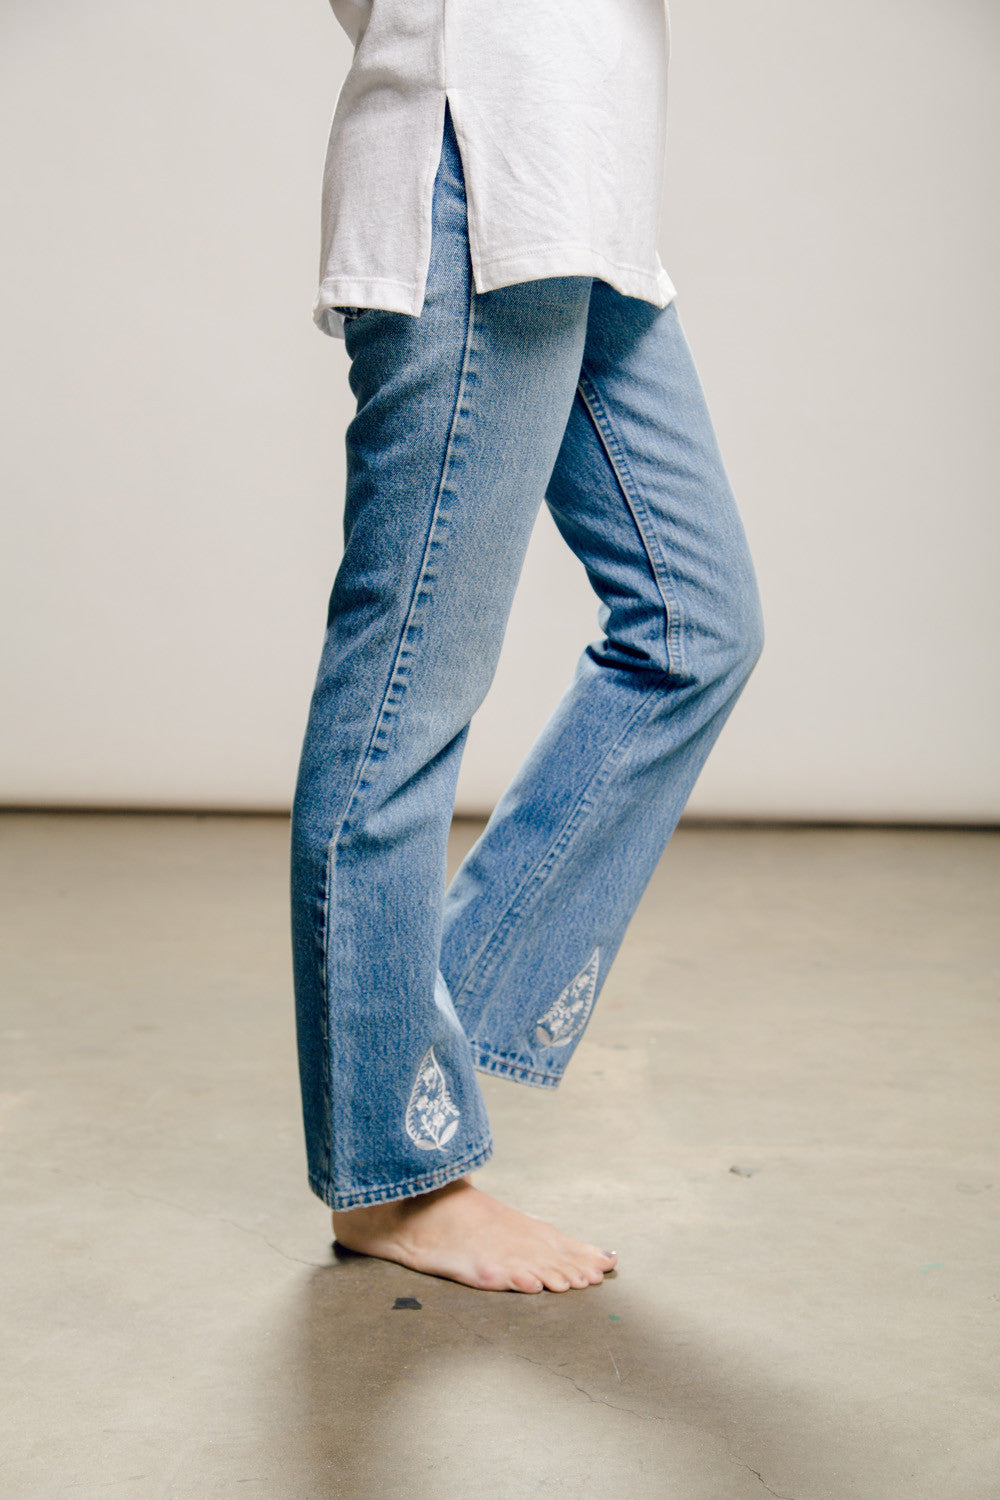 Women's Vintage Denim Levis Bottom Pant with Embroidery